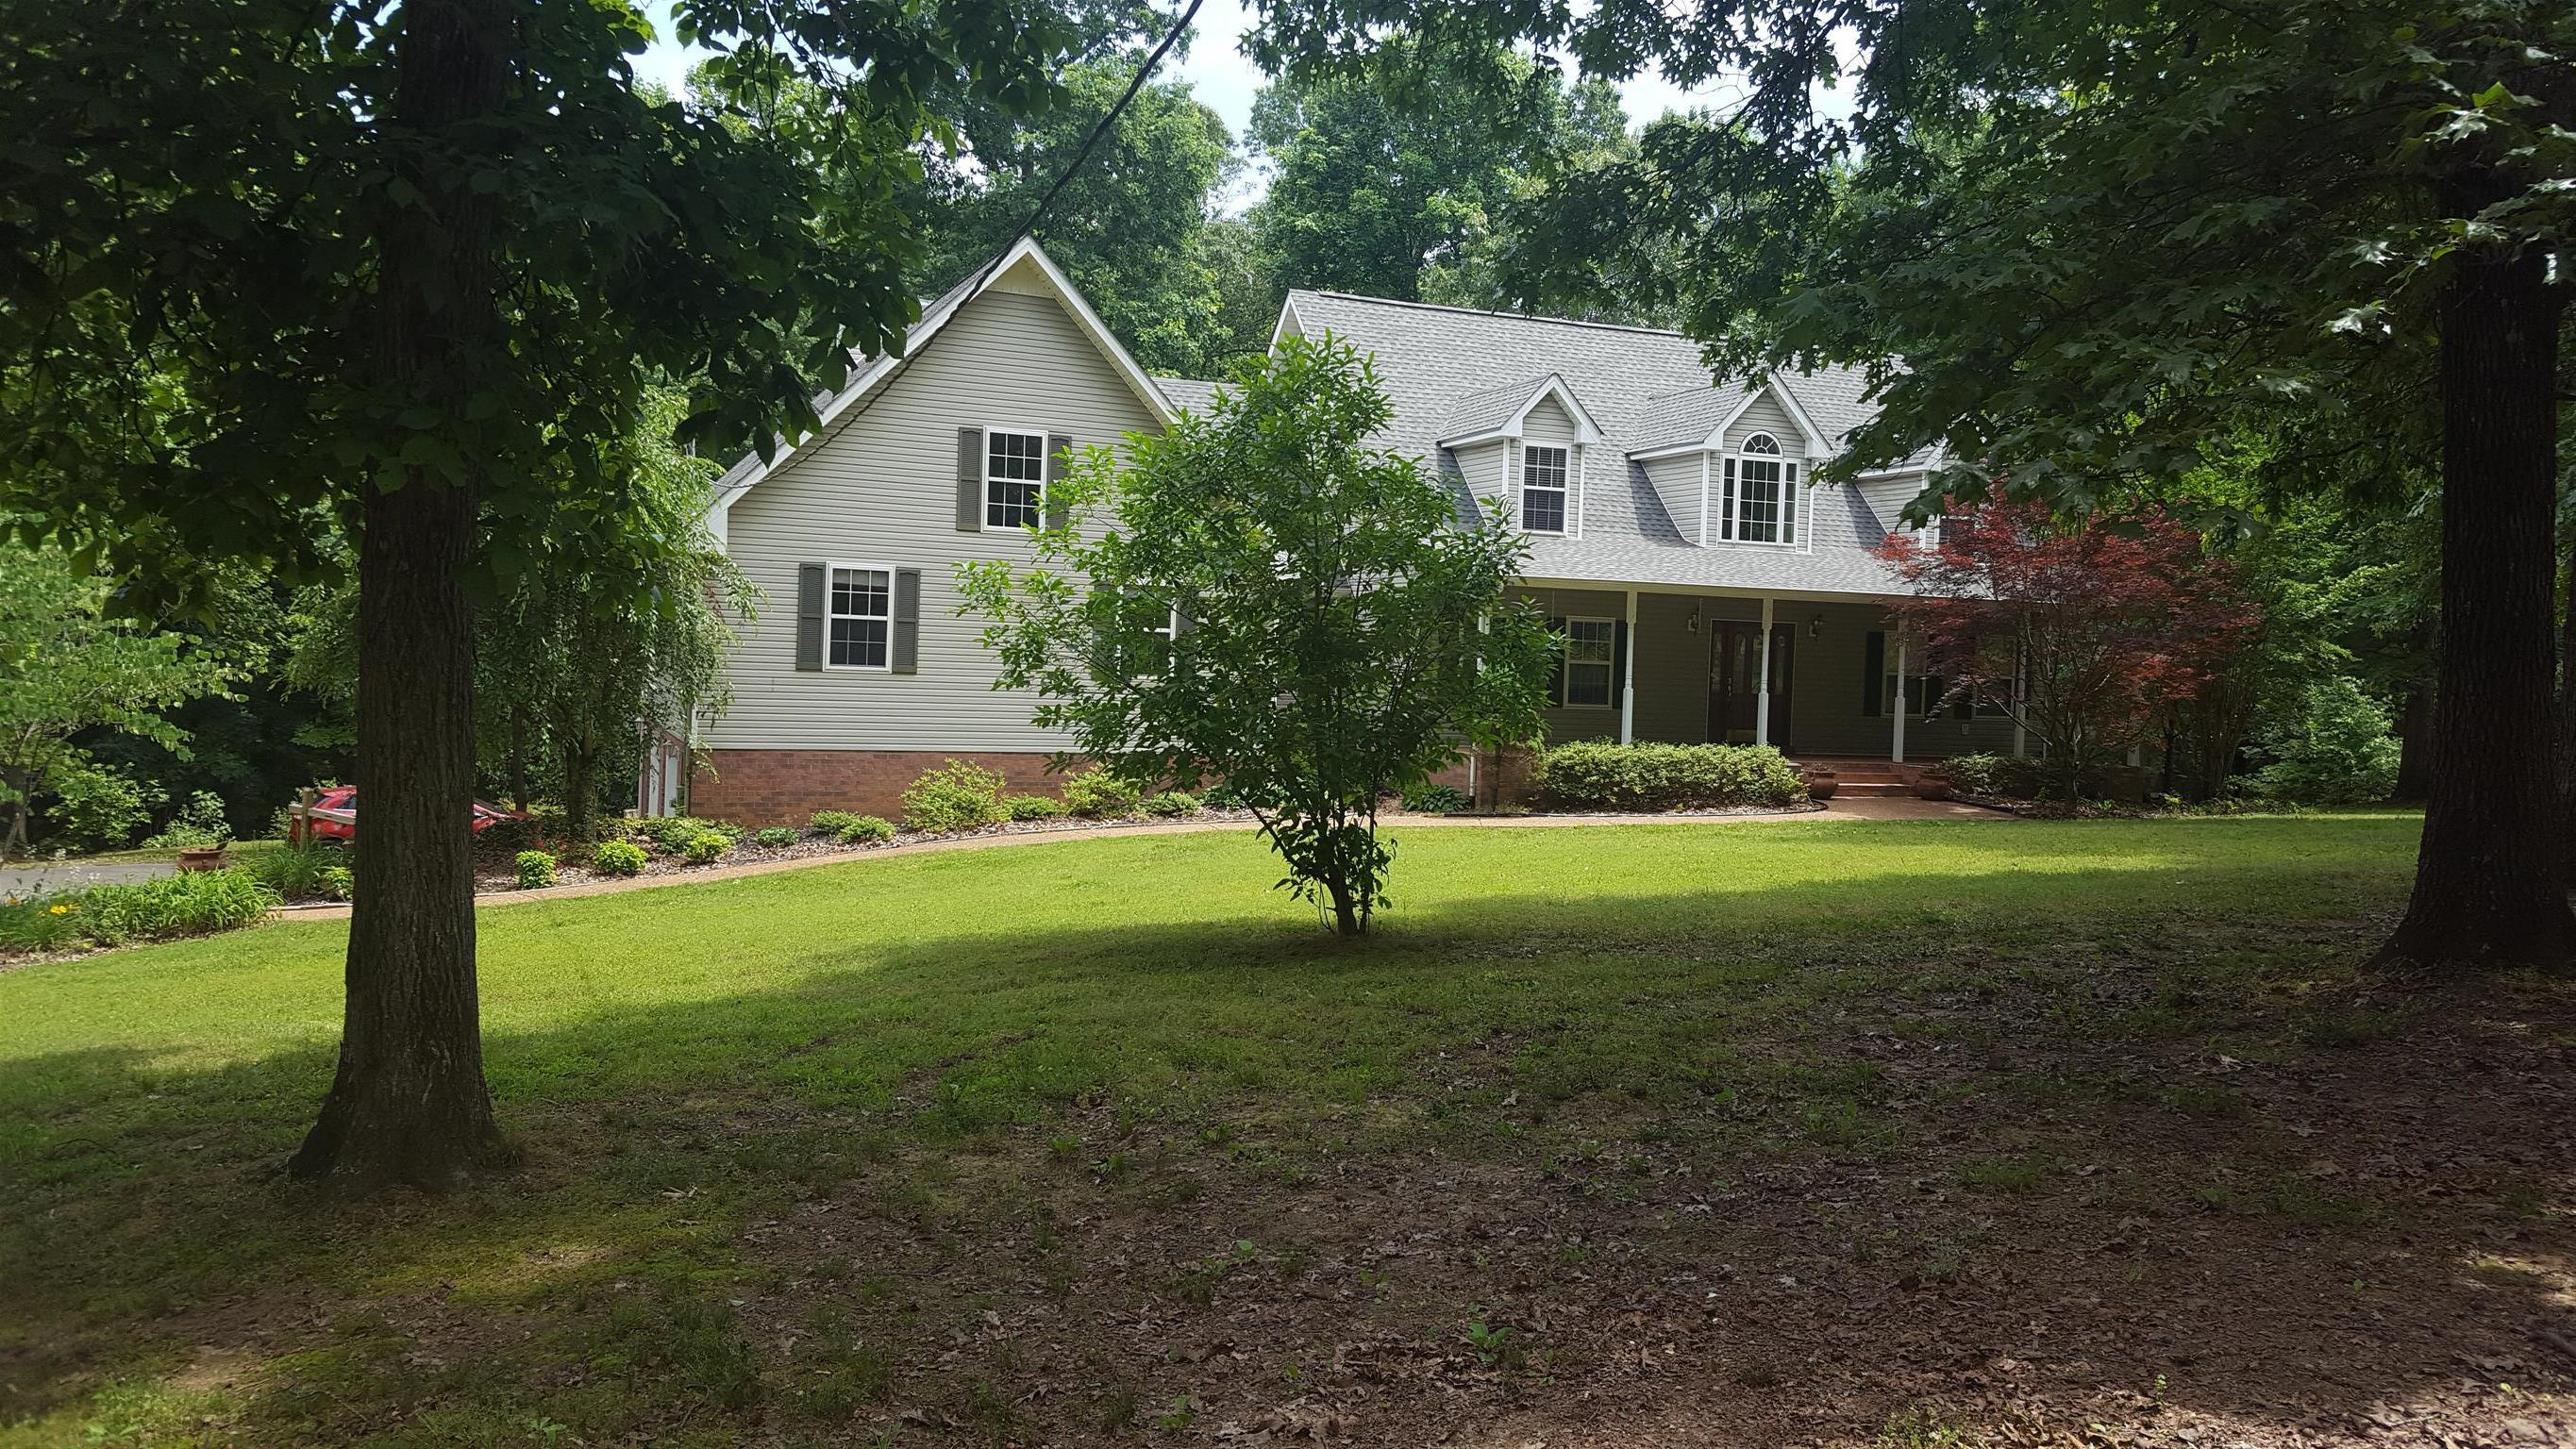 714 Iron Hill Rd, Burns, TN 37029 - Burns, TN real estate listing